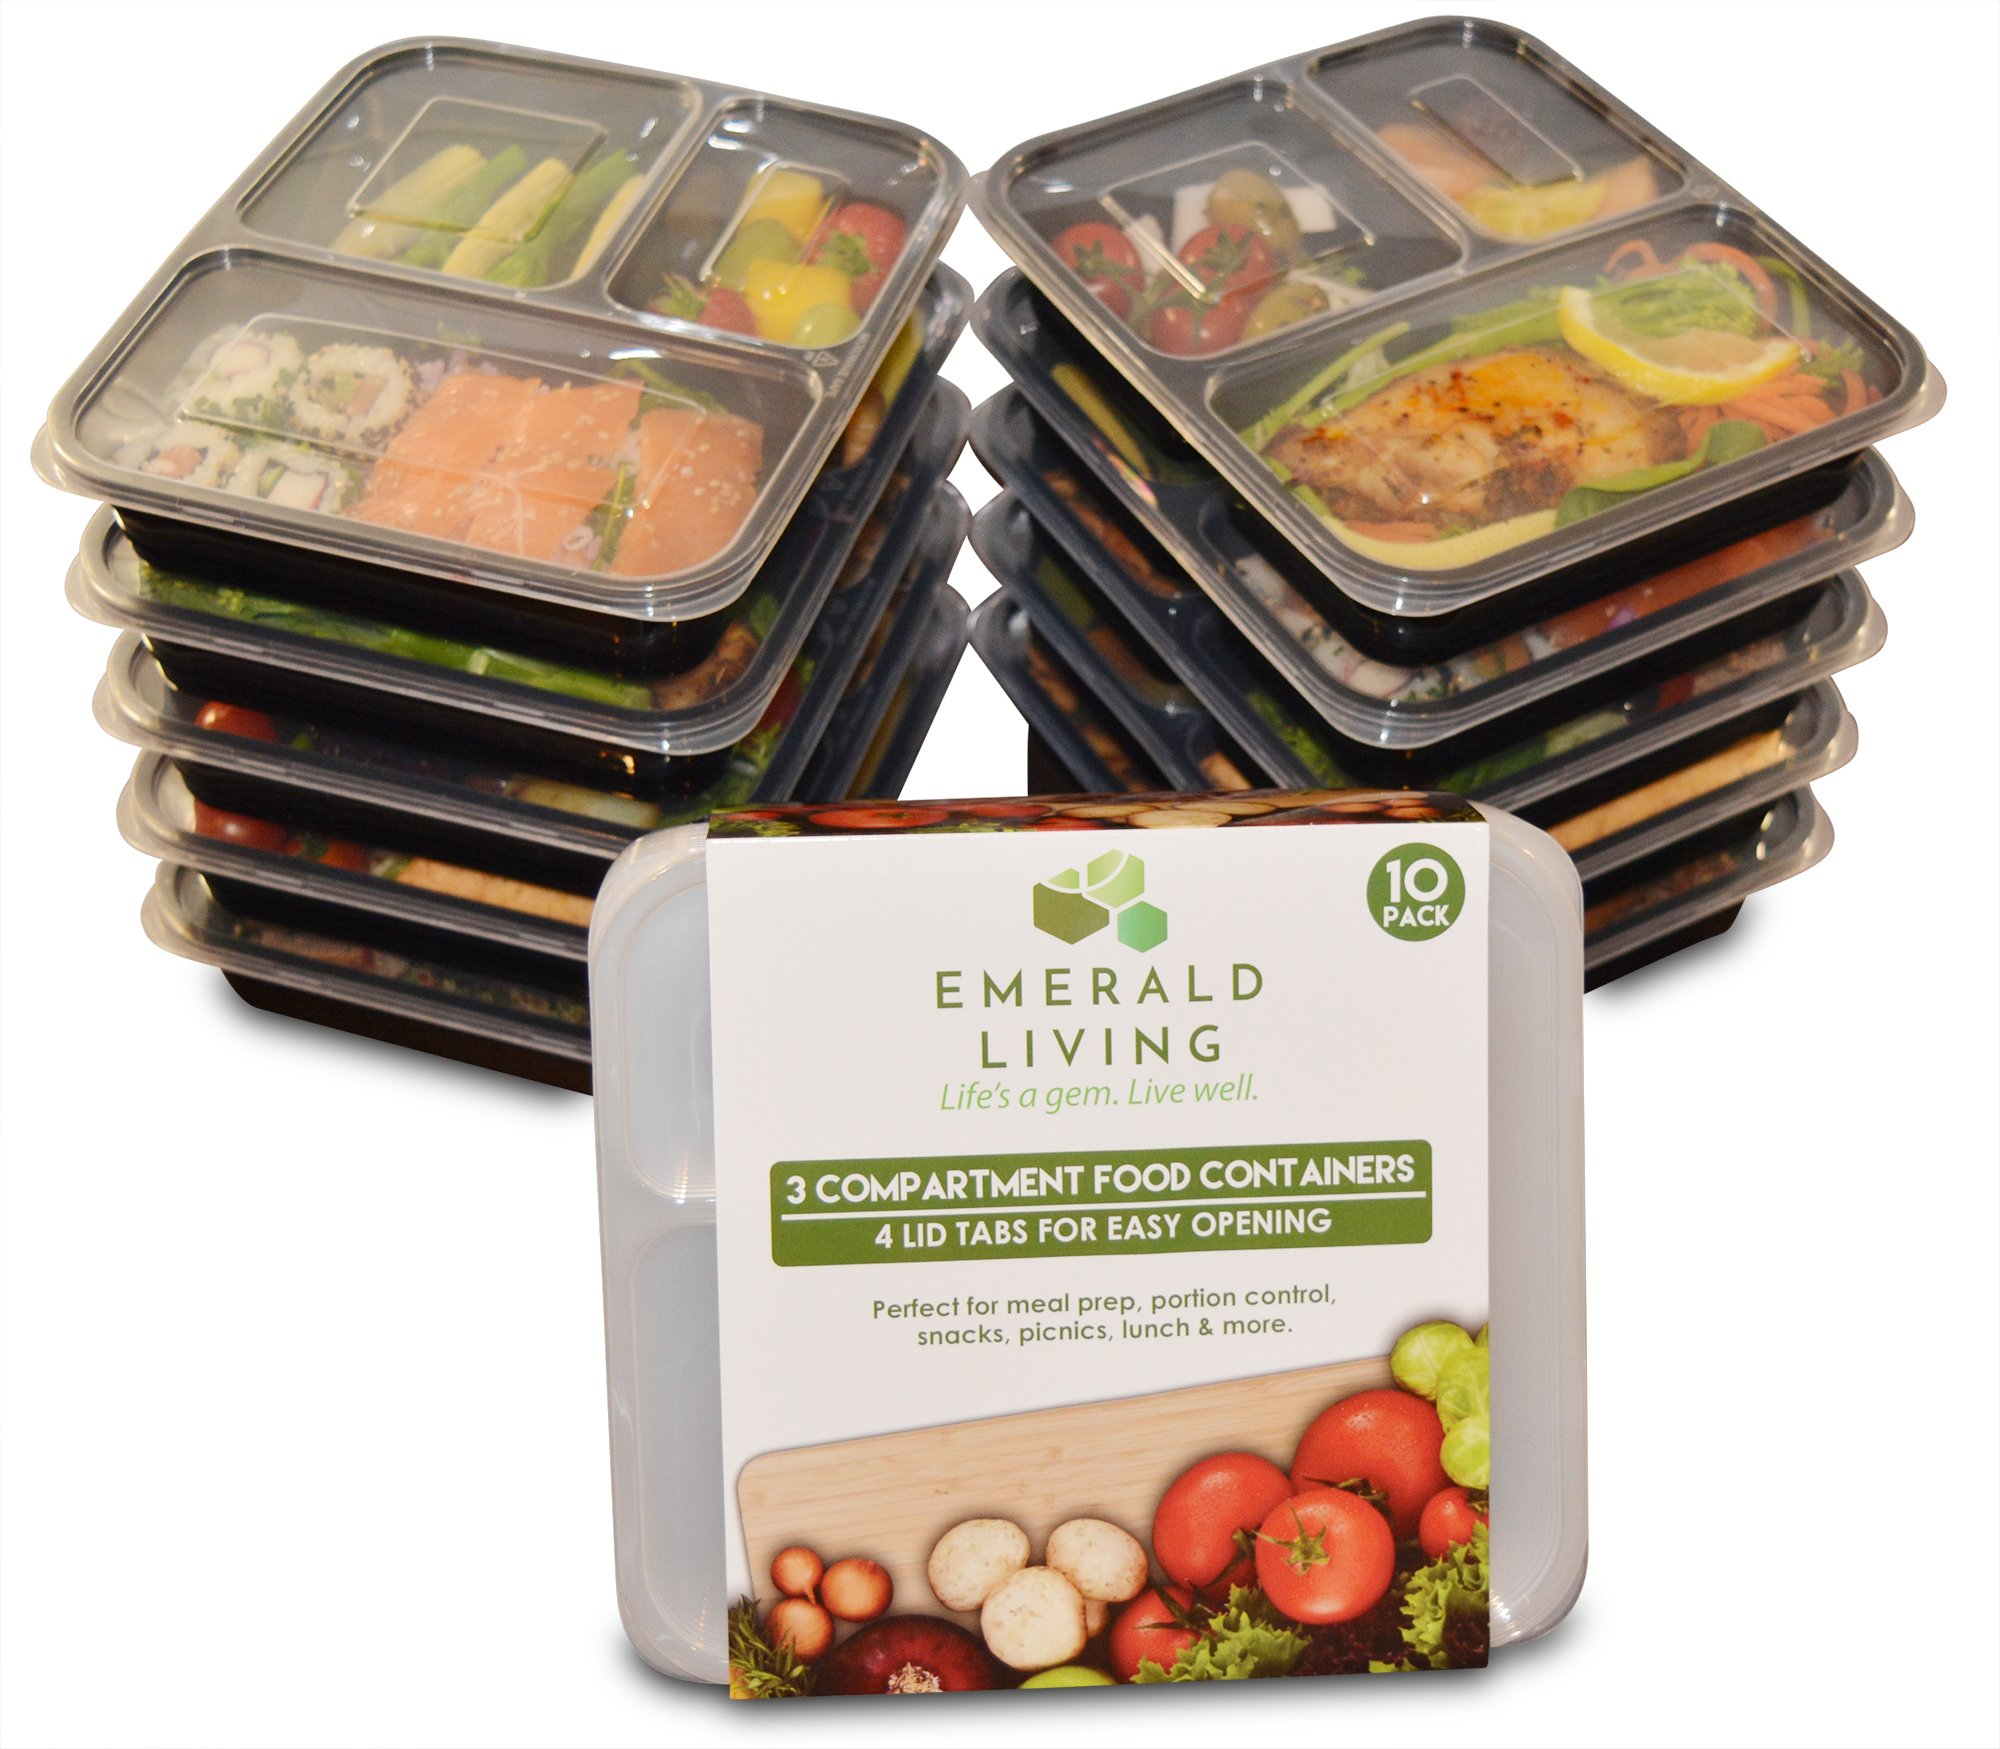 [10 pack] 3 compartment bpa free meal prep containers. reusable plastic food containers & lids. stackable, microwavable, freezer & dishwasher safe. bento box/lunch box container set + ebook [36 oz] - 81ZtxitlwAL - [10 pack] 3 Compartment BPA Free Meal Prep Containers. Reusable Plastic Food Containers & Lids. Stackable, Microwavable, Freezer & Dishwasher Safe. Bento Box/Lunch Box Container Set + EBook [36 oz]